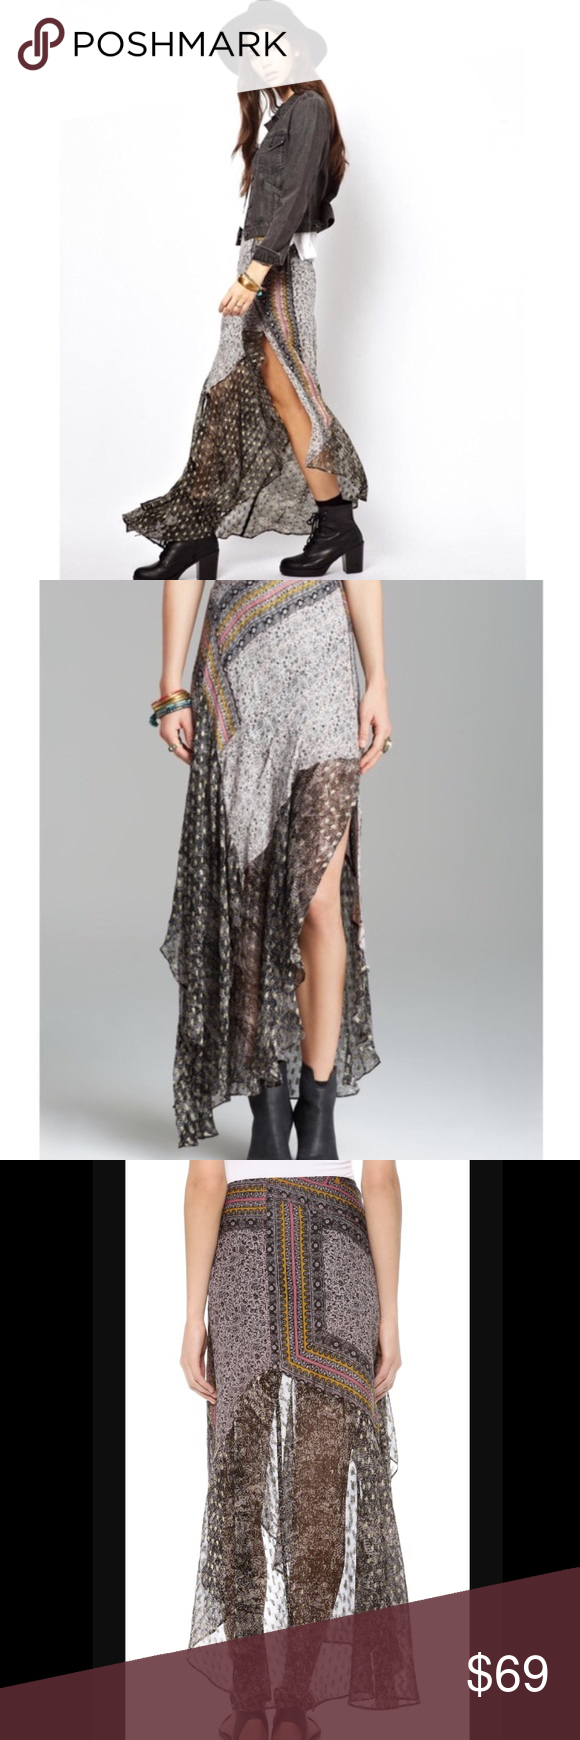 Spotted while shopping on Poshmark: Free People North Country Skirt 2! #poshmark #fashion #shopping #style #Free People #Dresses & Skirts